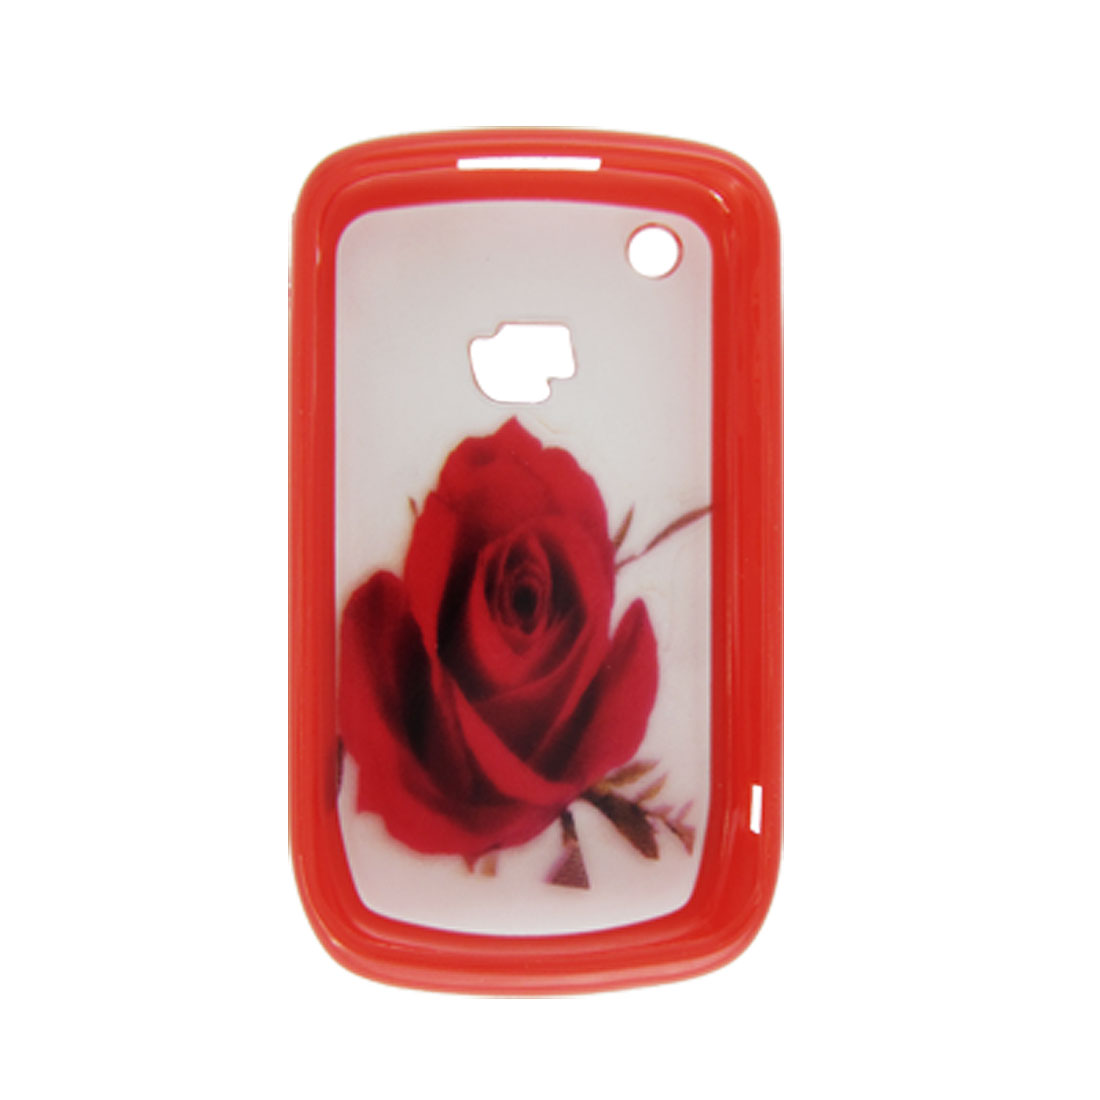 Red Rose Flower Case Plastic Protector for Blackberry 8520